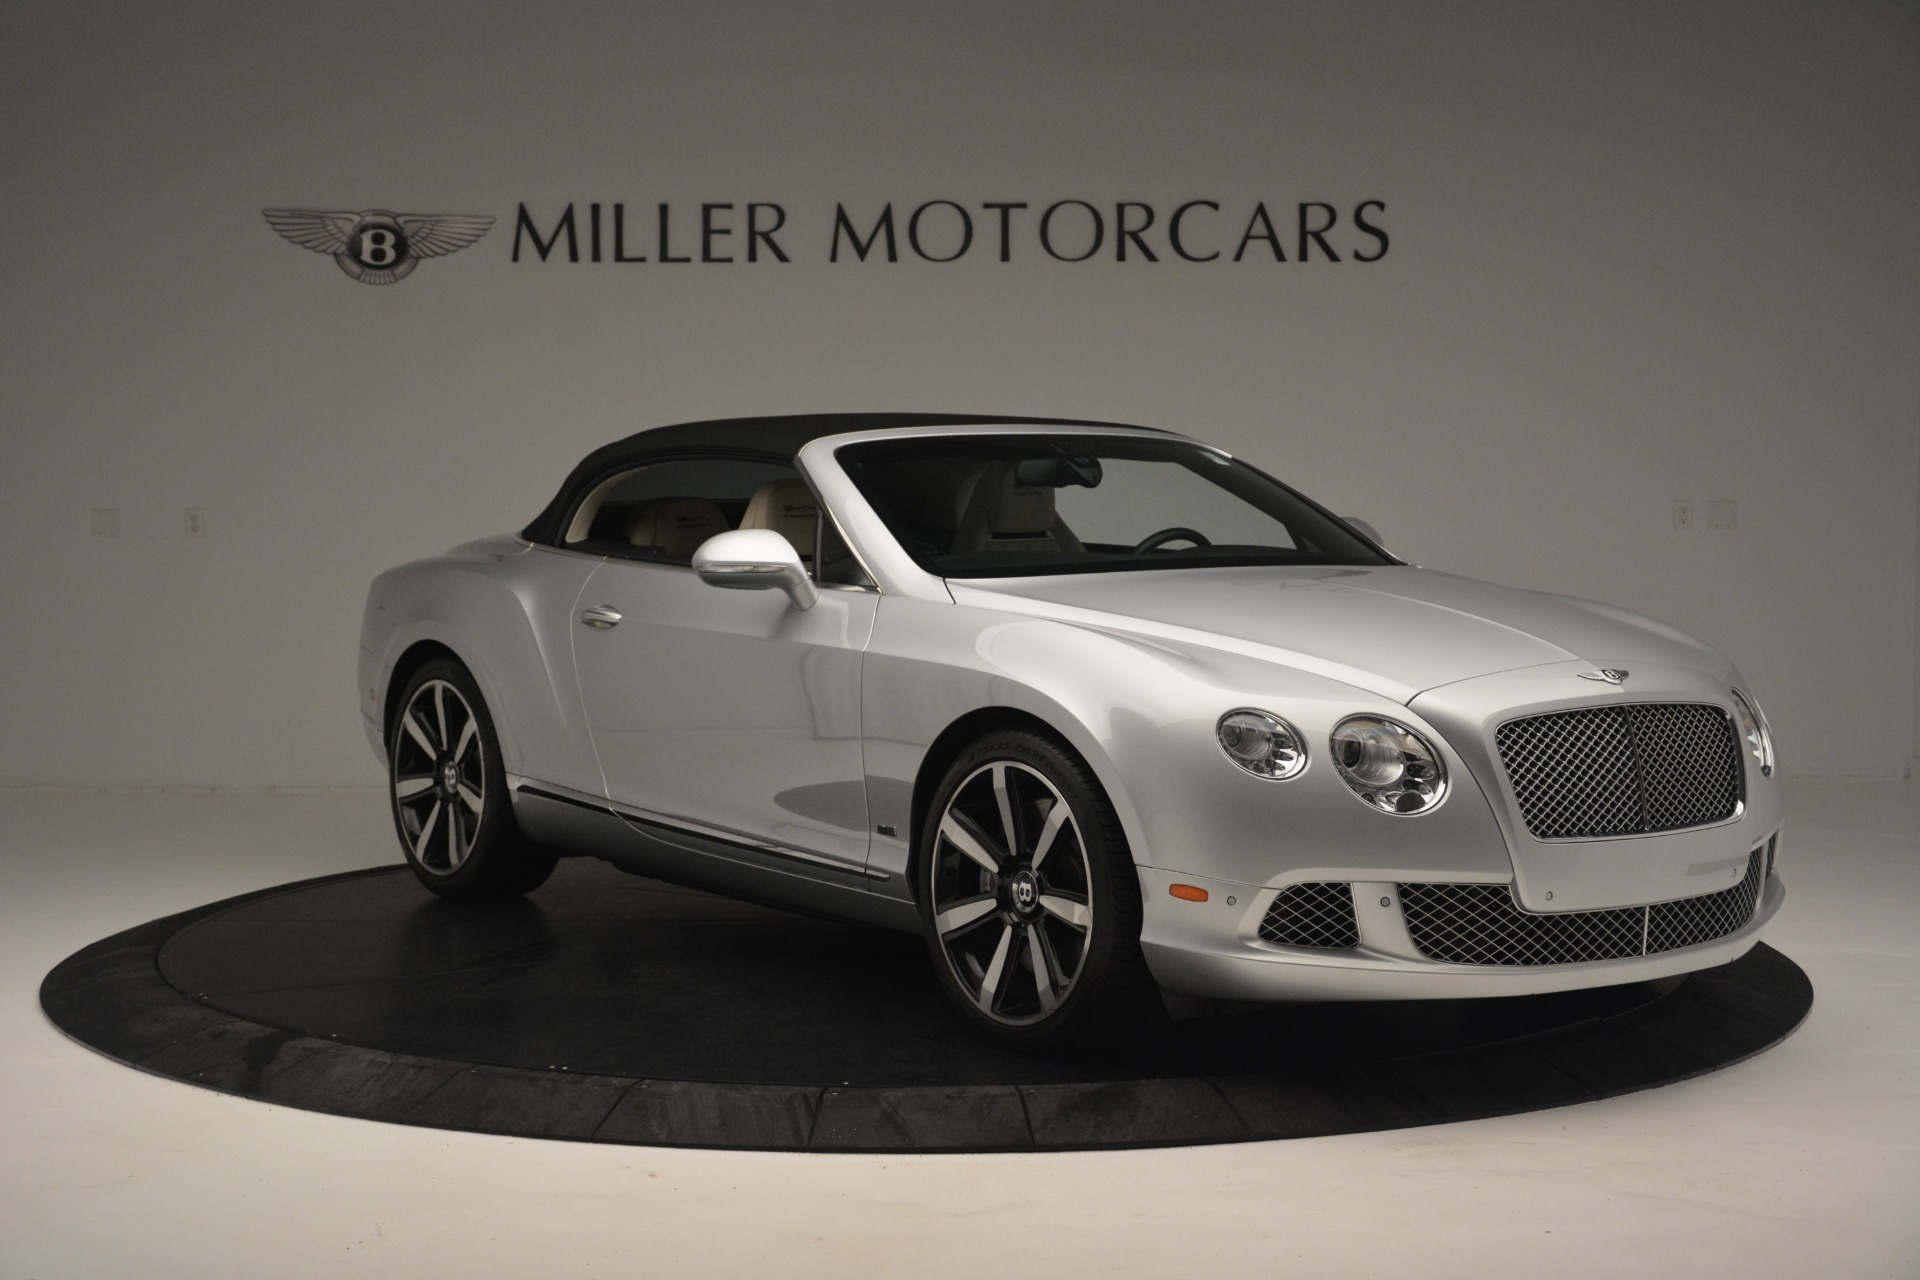 Used 2013 Bentley Continental GT W12 Le Mans Edition For Sale In Greenwich, CT 2519_p16